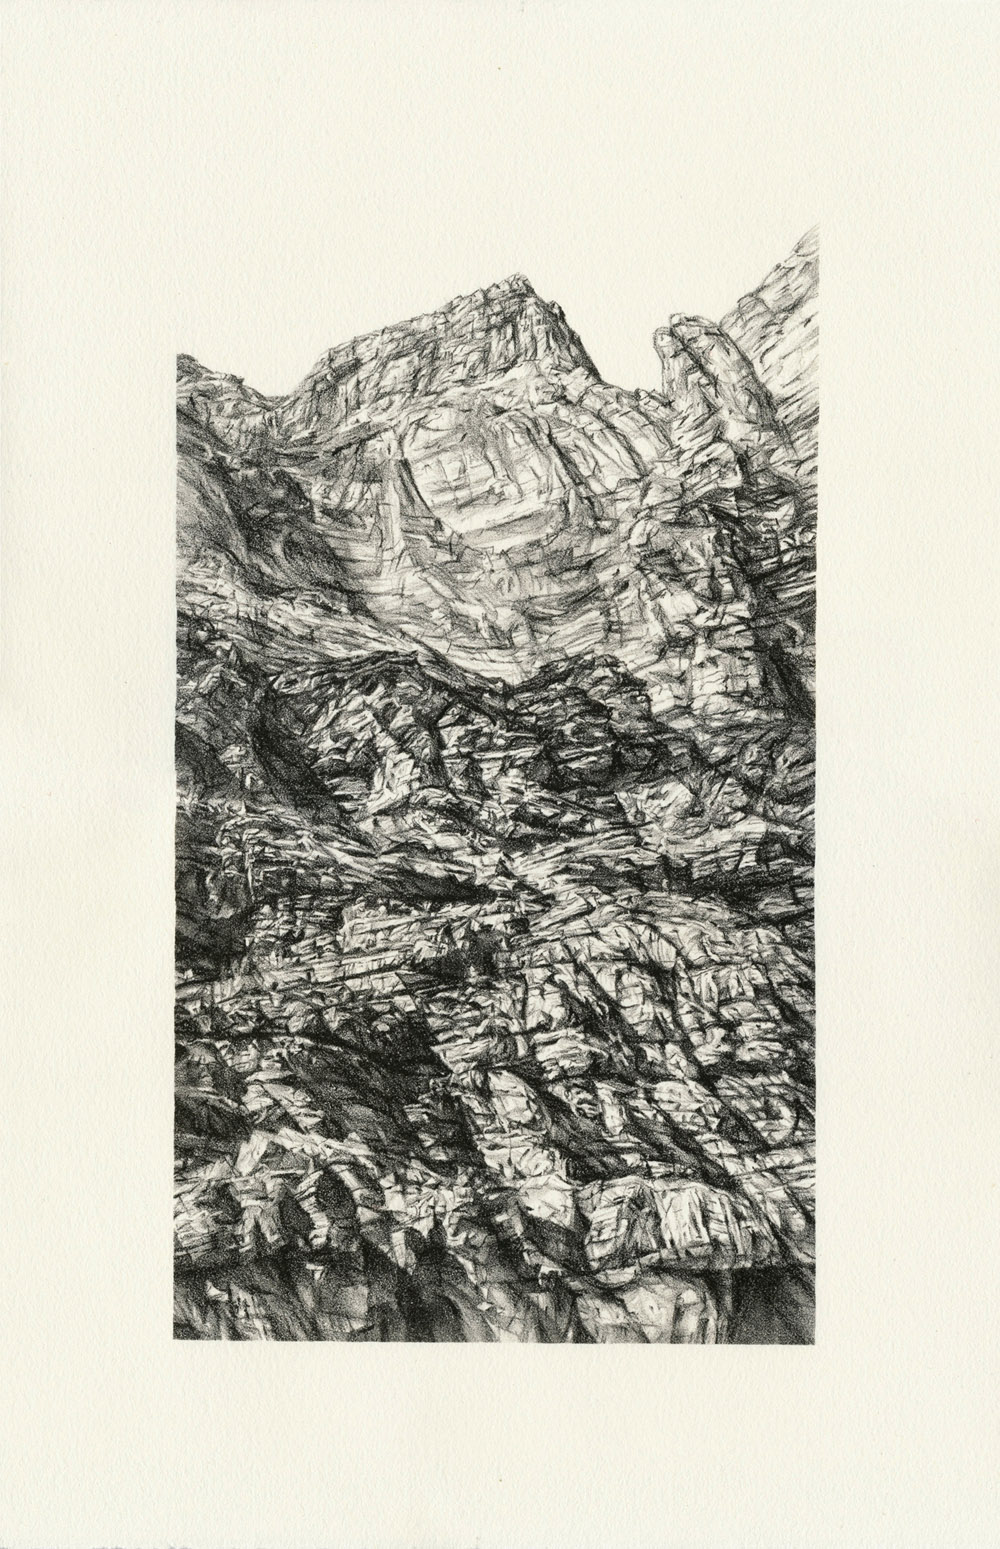 Inner Gorge, lithograph, edition of 47, 38 x 26 cm, 2013 (Print Council of Australia Commission)